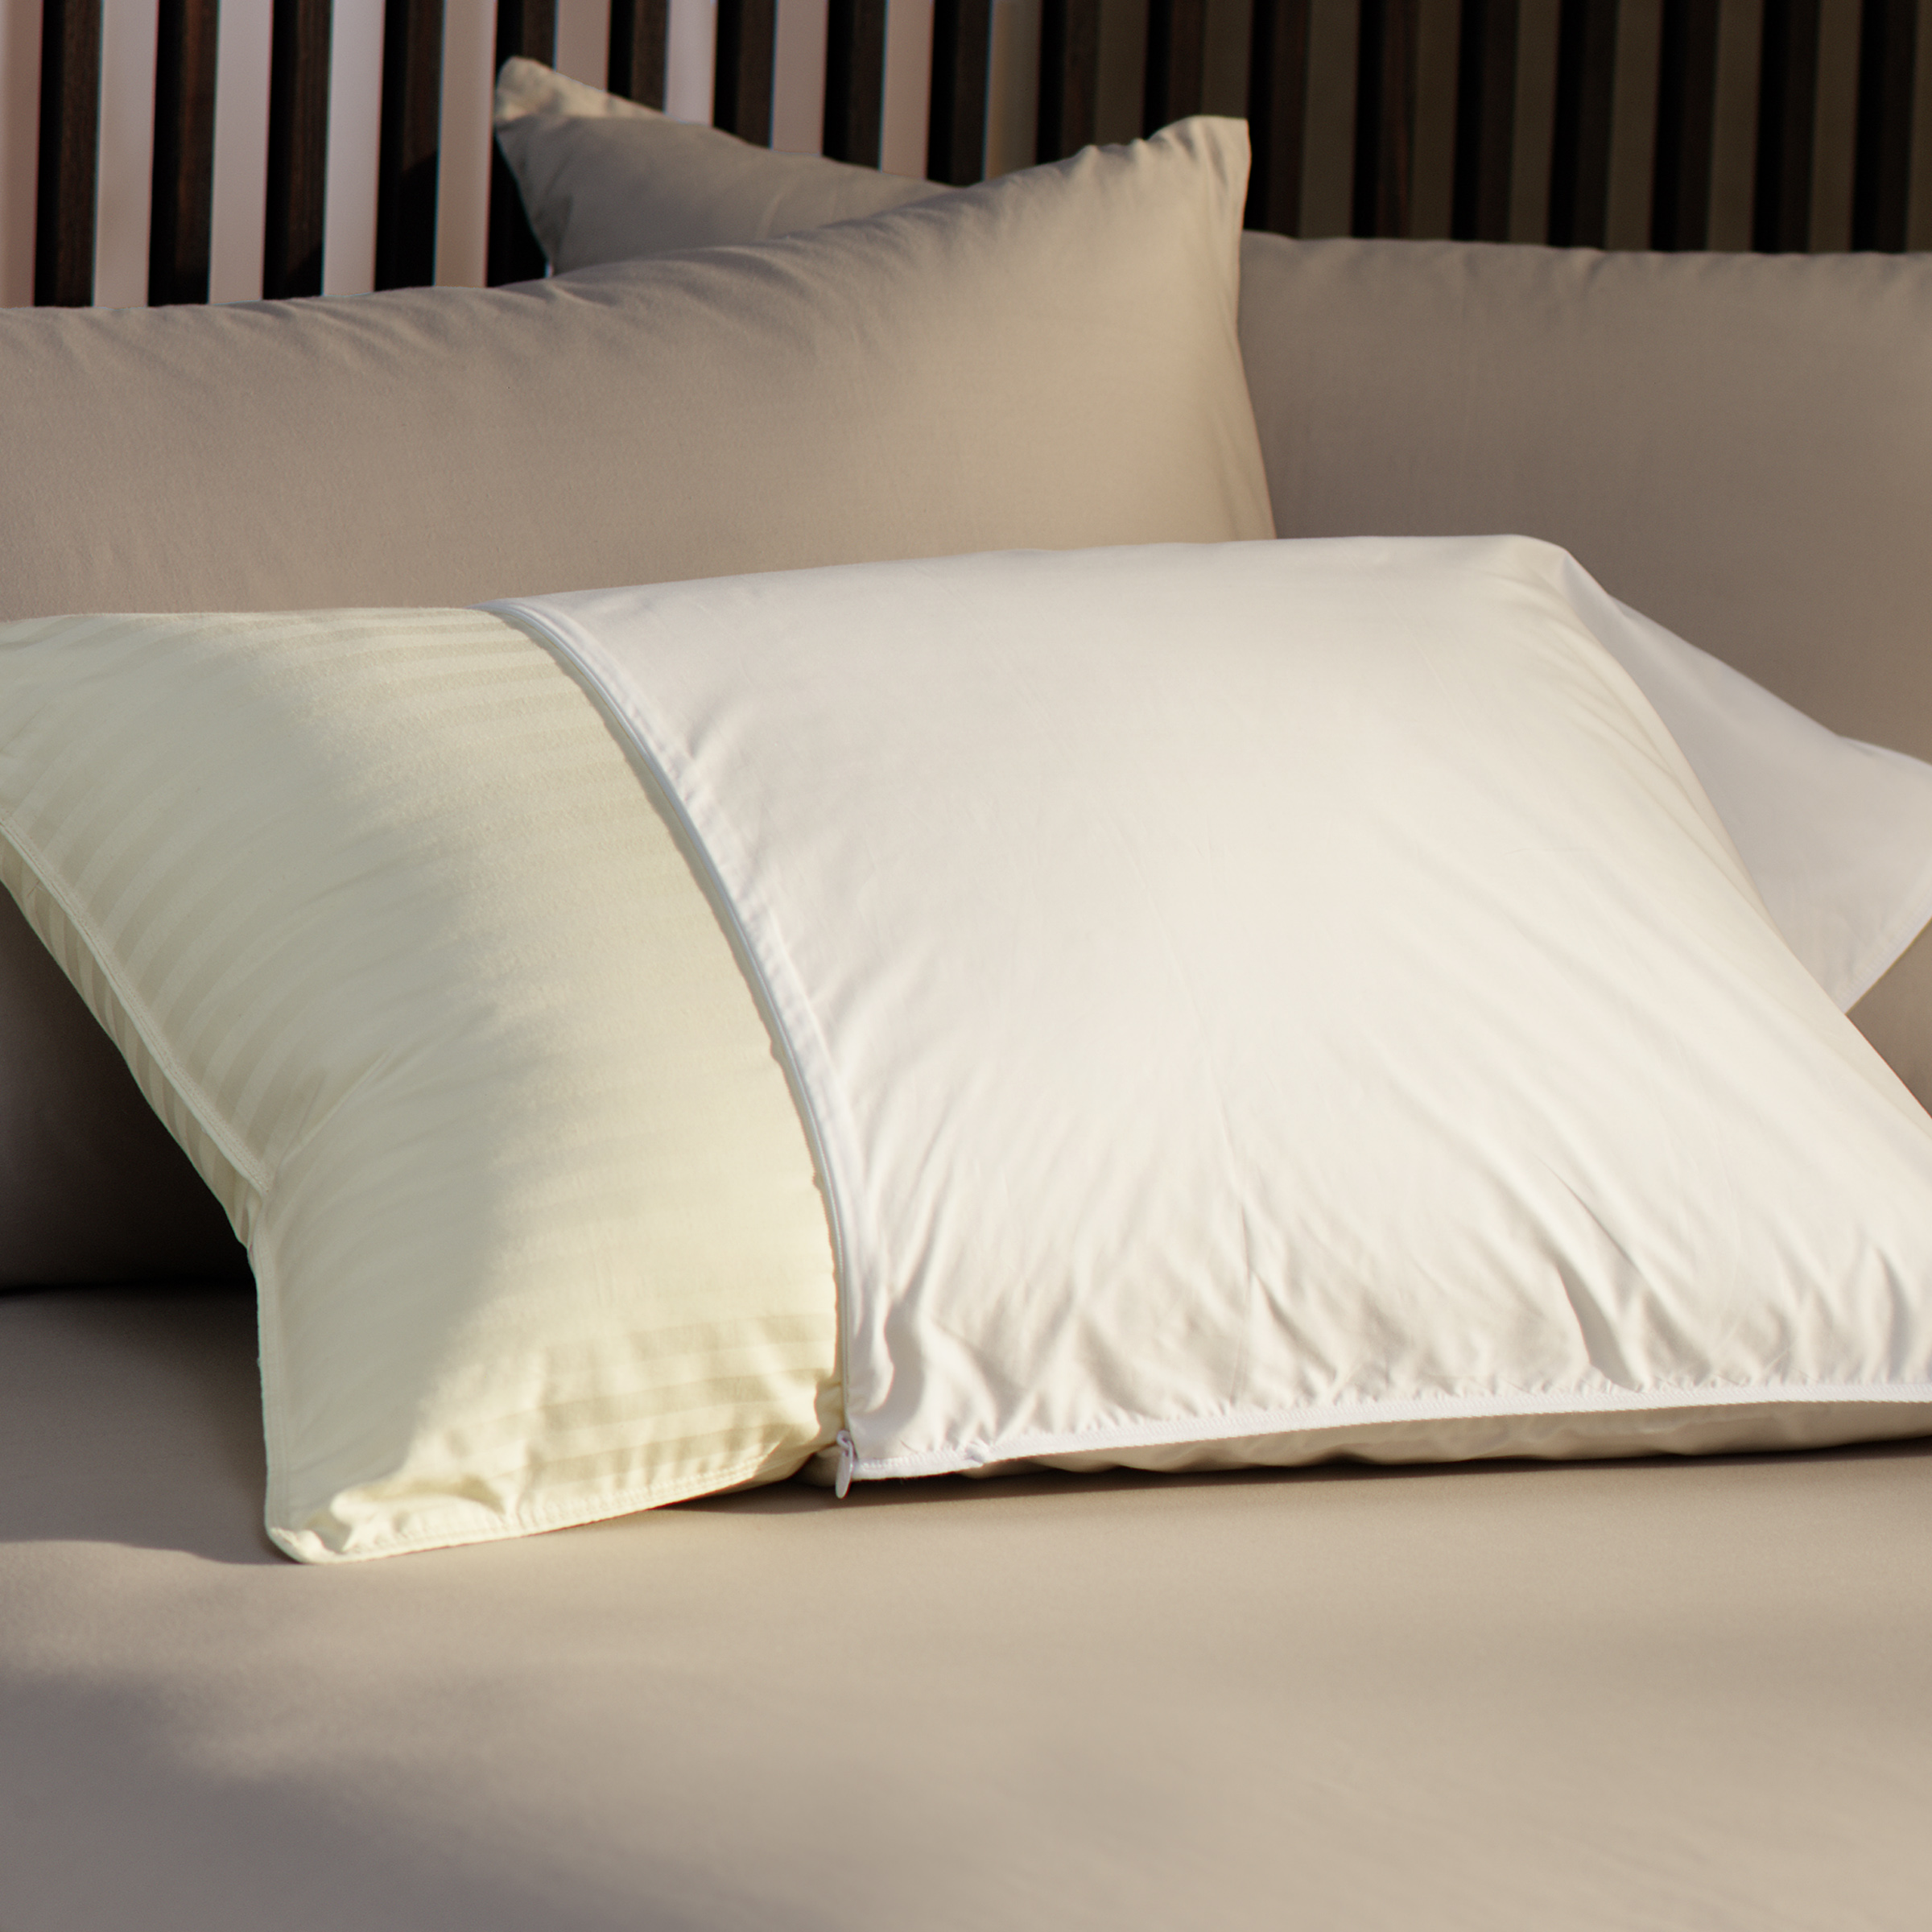 free sleep protector set overstock protectors pillow encase today of product bedding omniphase shipping bath tite